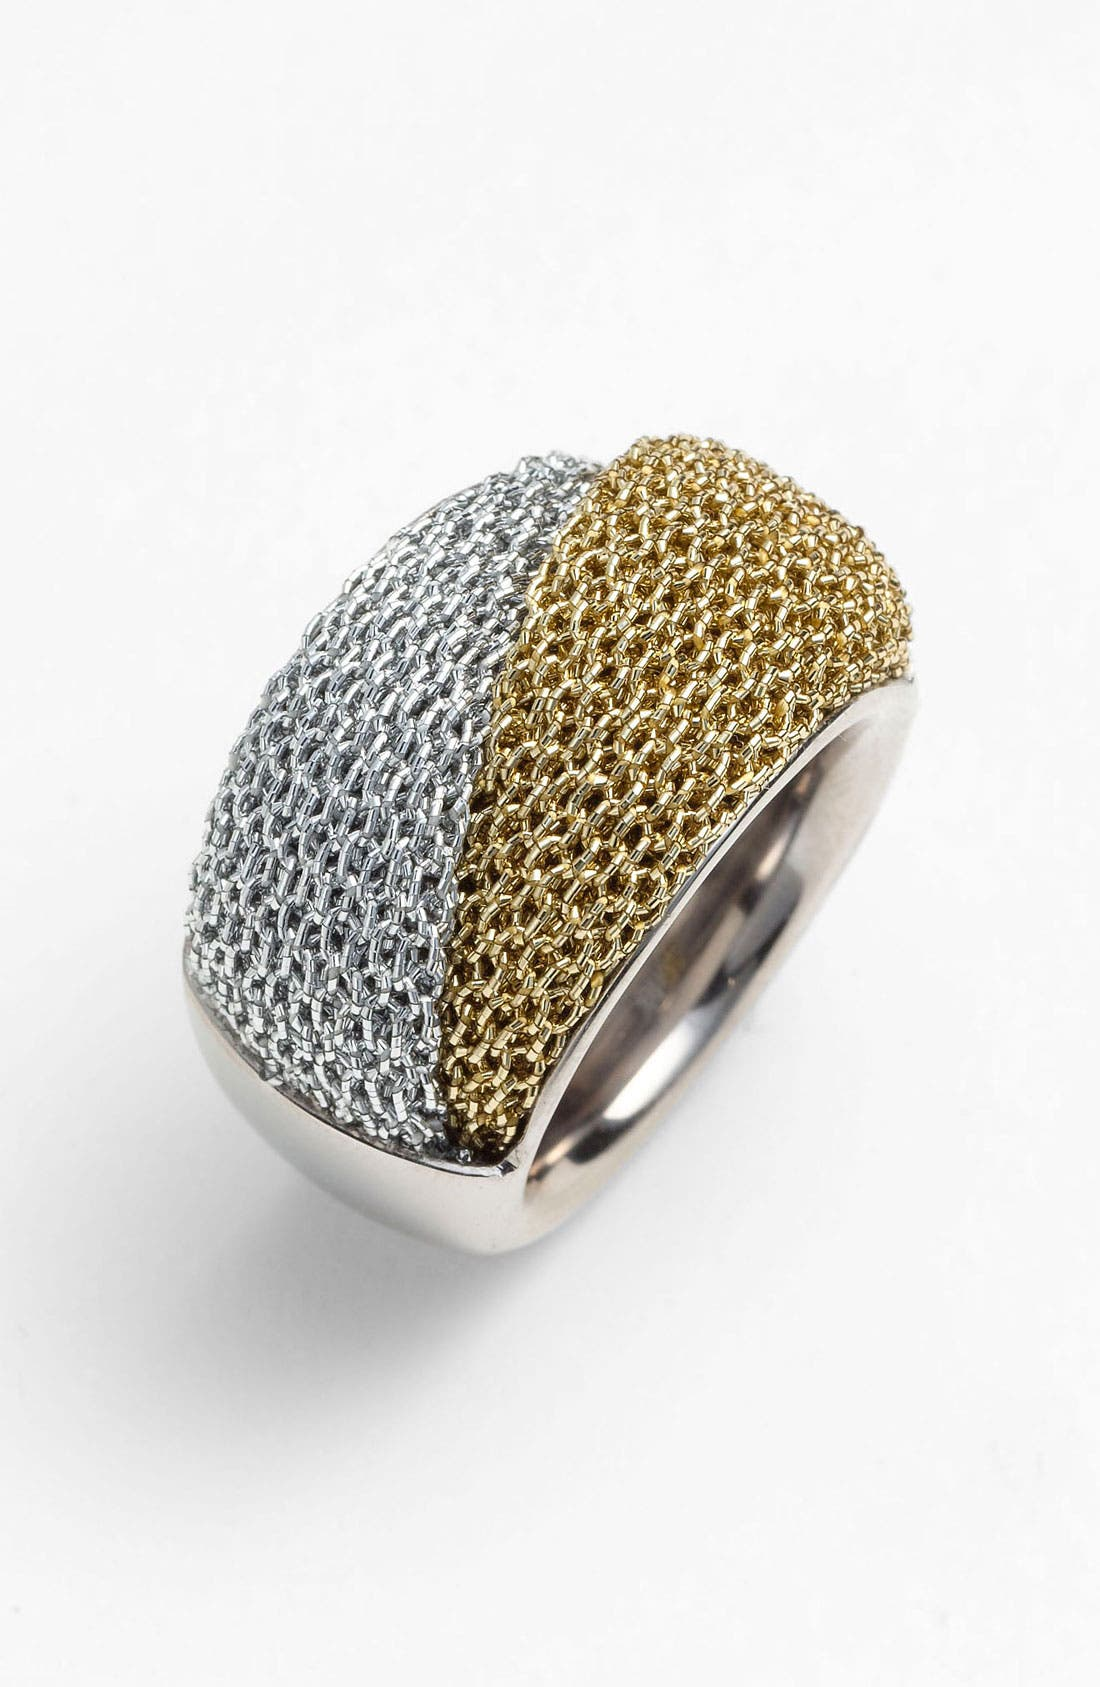 Main Image - Adami & Martucci 'Mesh' Two Tone Ring (Nordstrom Exclusive)